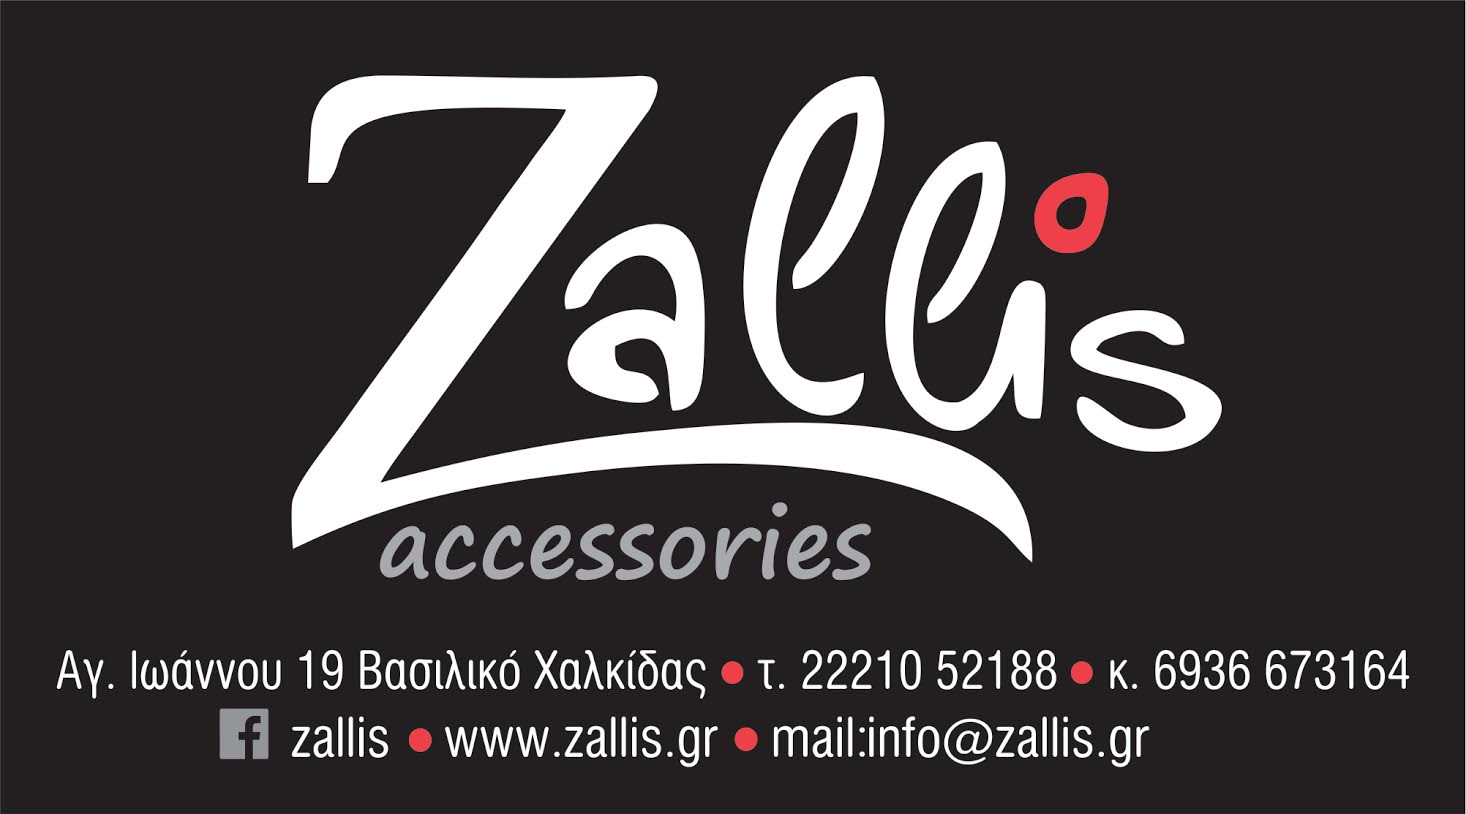 Zallis accessories